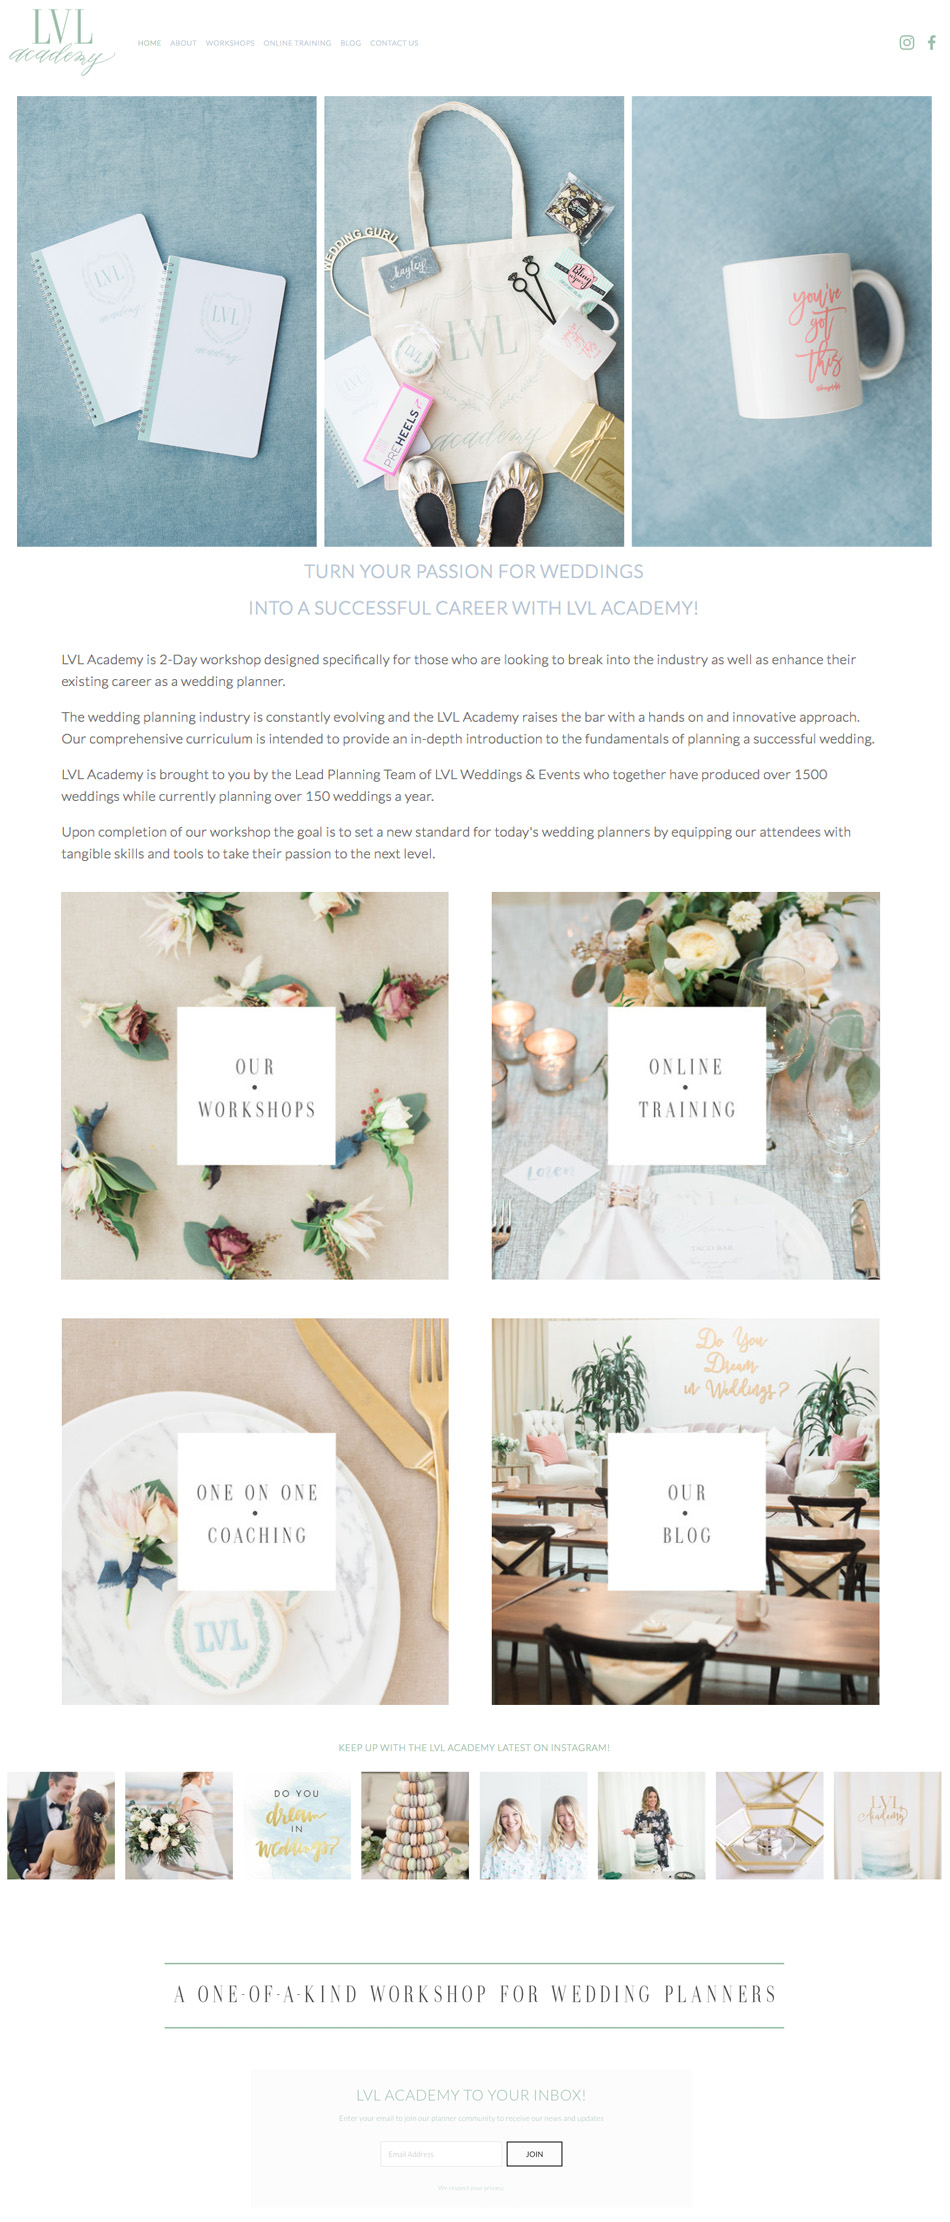 theeditorstouch.com | LVL Academy Website Designer | Workshops for Wedding Planners | The Editor's Touch